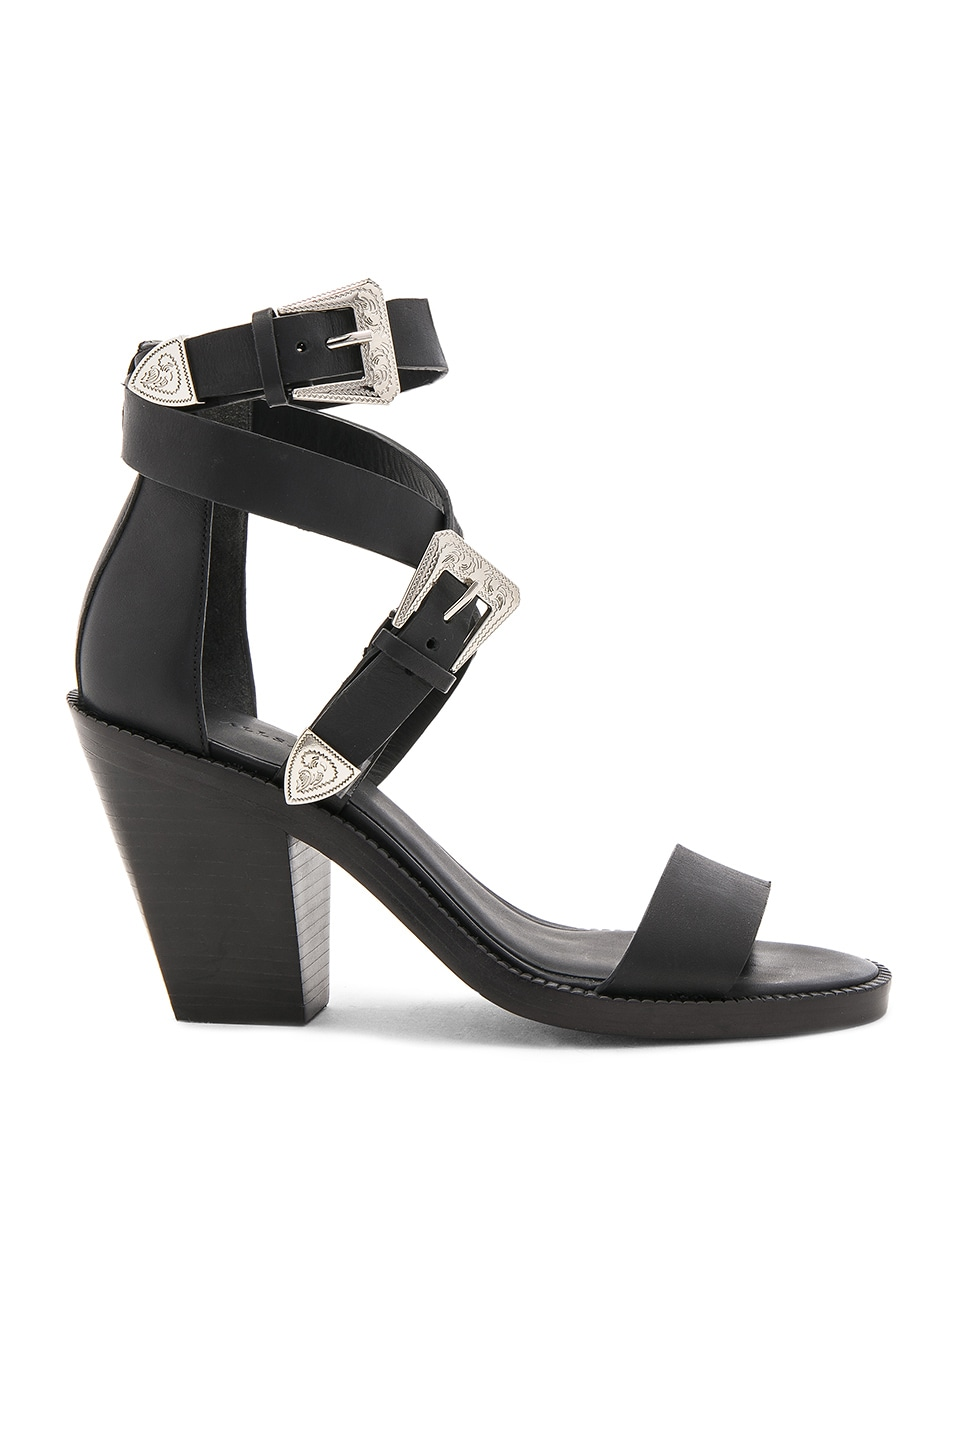 ALLSAINTS Viva Heel in Black